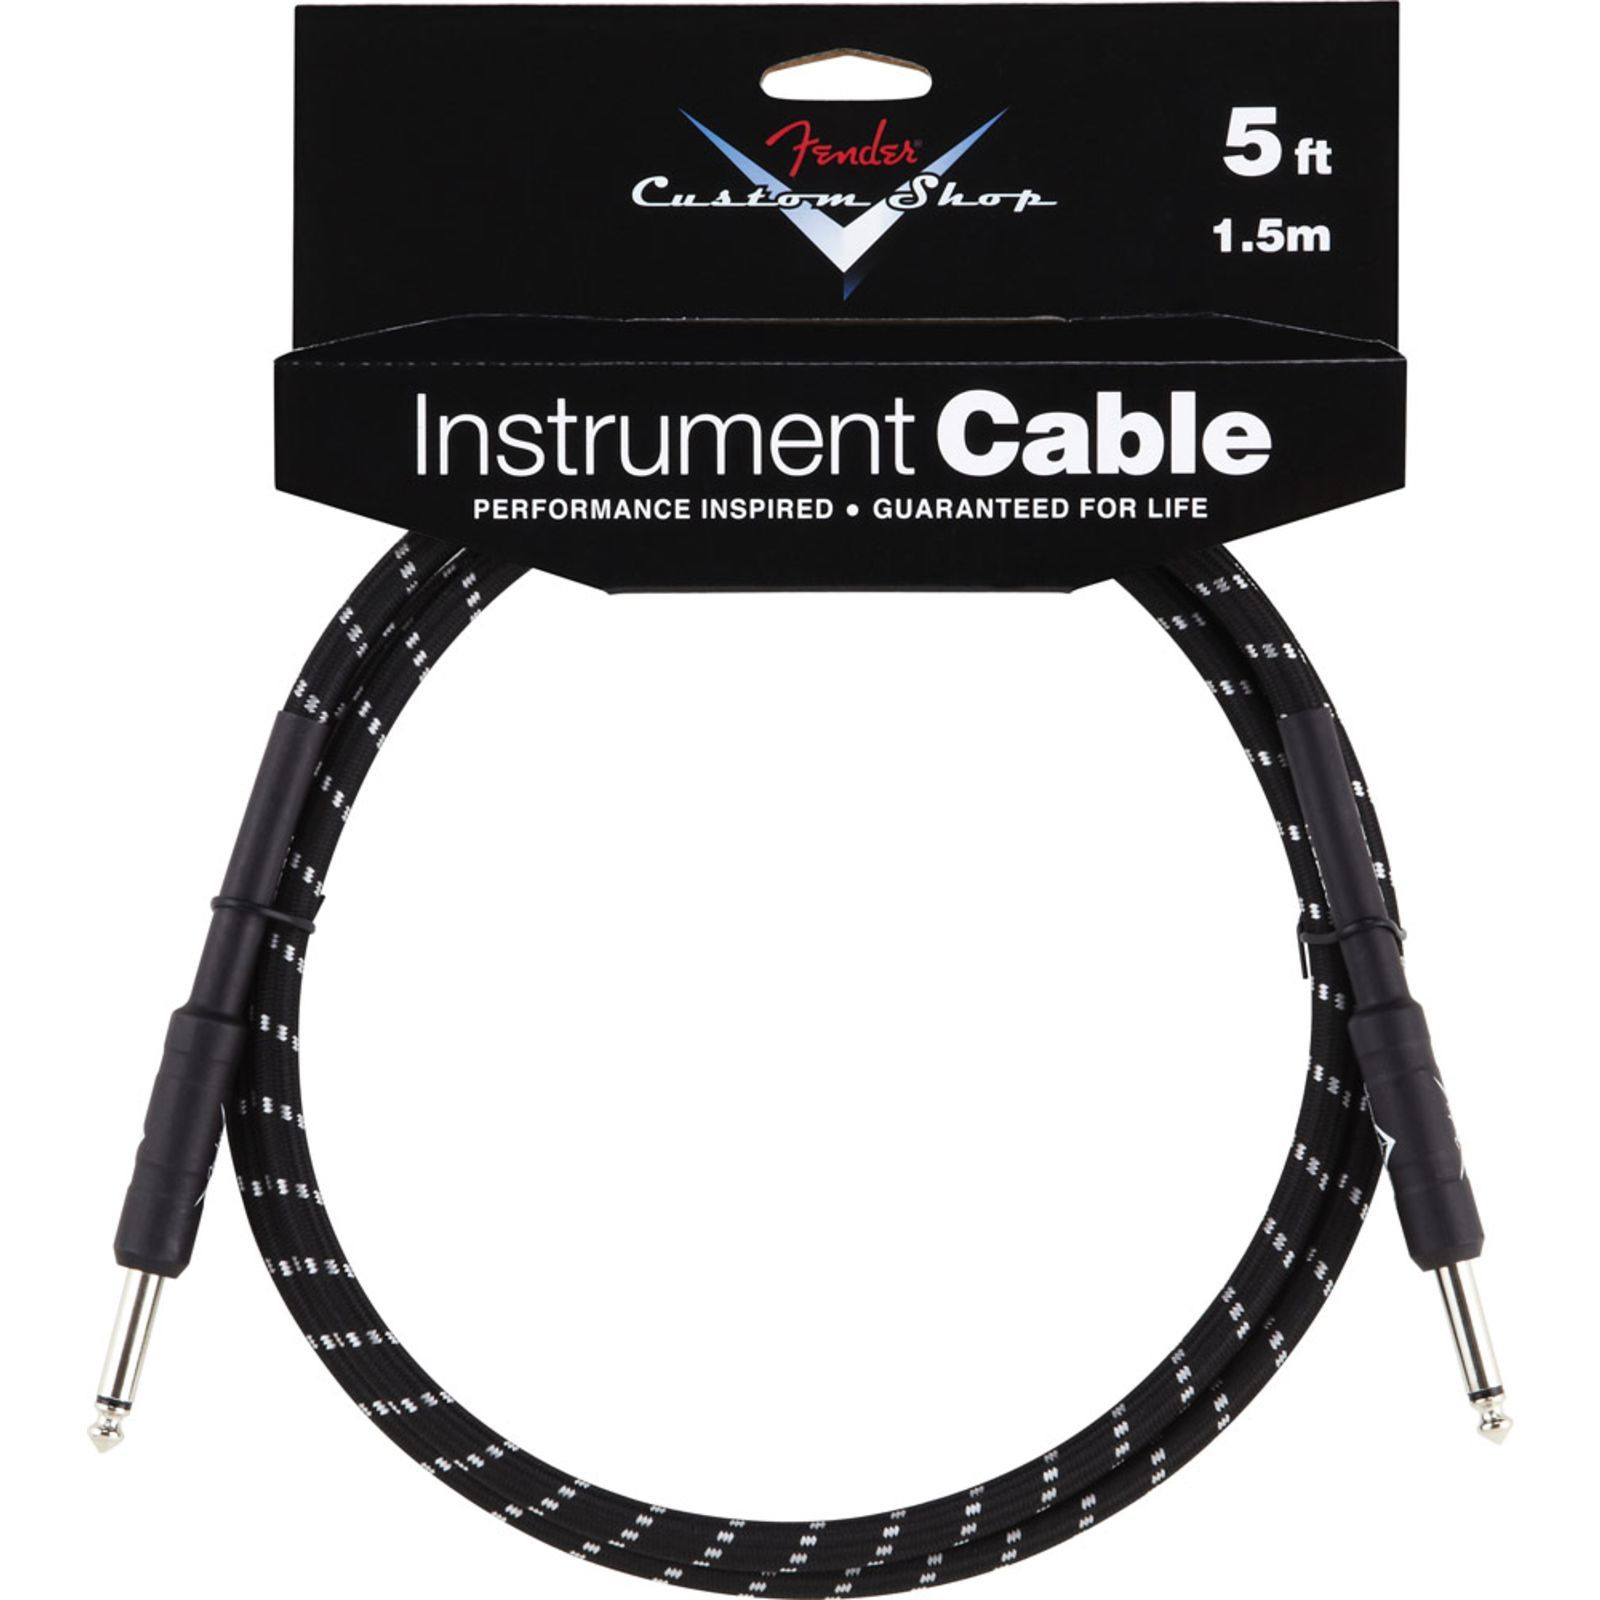 Fender Custom Shop Cable 1.5m BTW Black Tweed, Kli/Kli Produktbillede